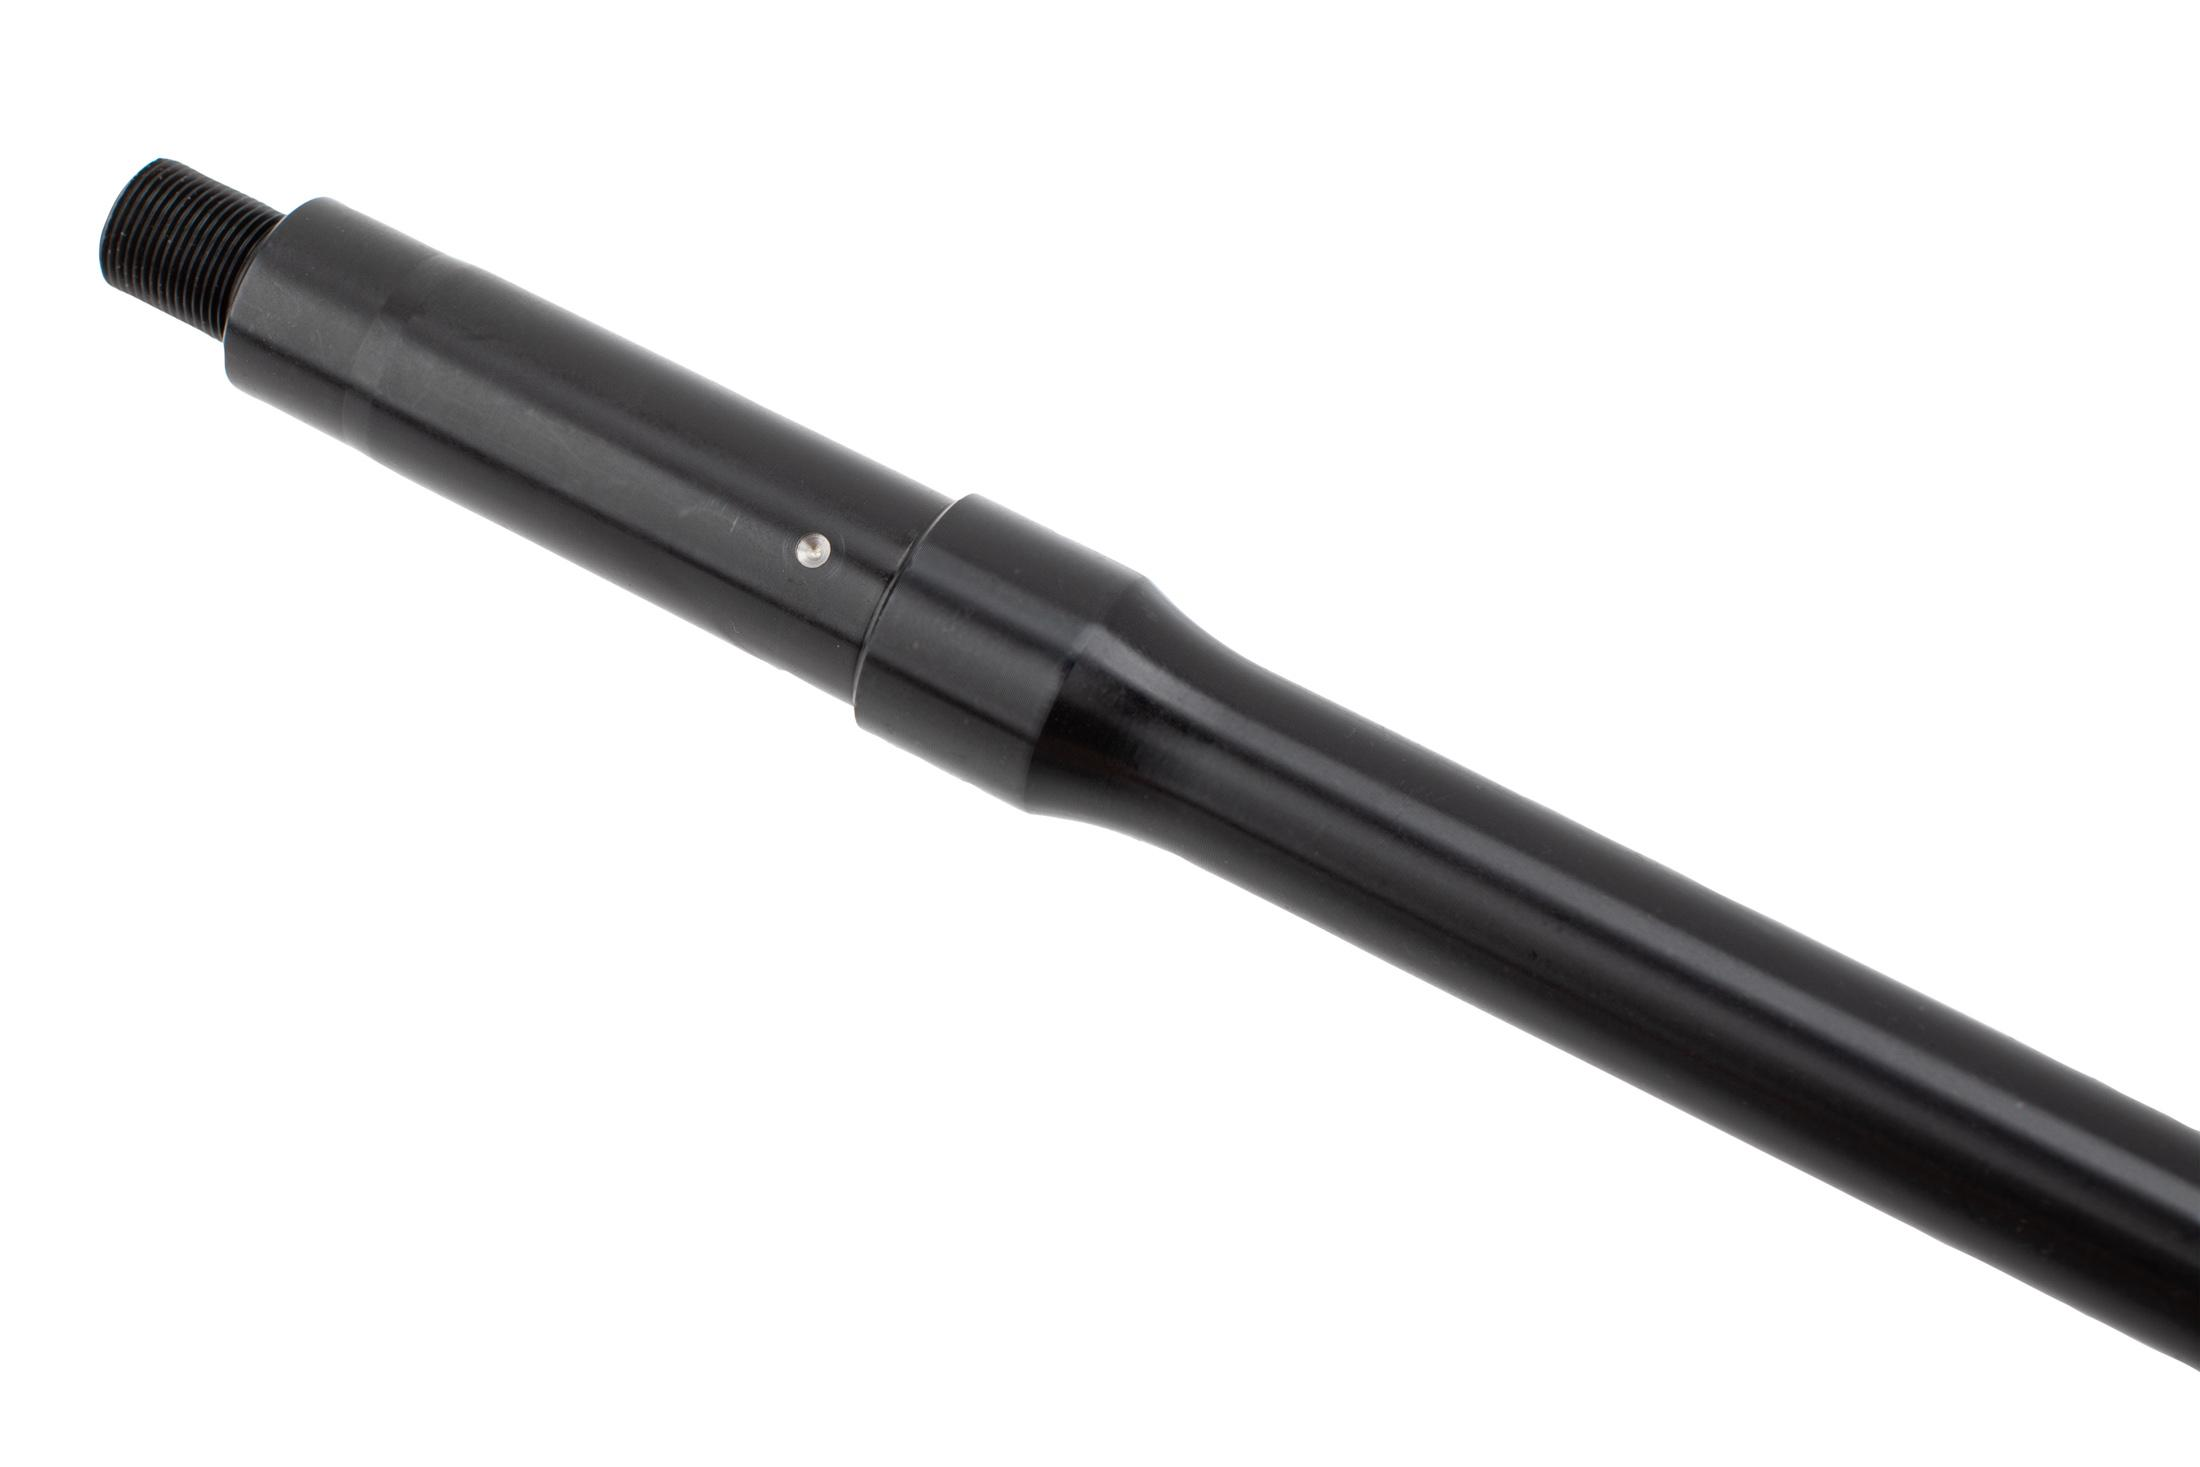 Roscoe Manufacturing bloodline 10.5in 5.56 NATO AR barrel features a tough nitride finish and M4 barrel extension.